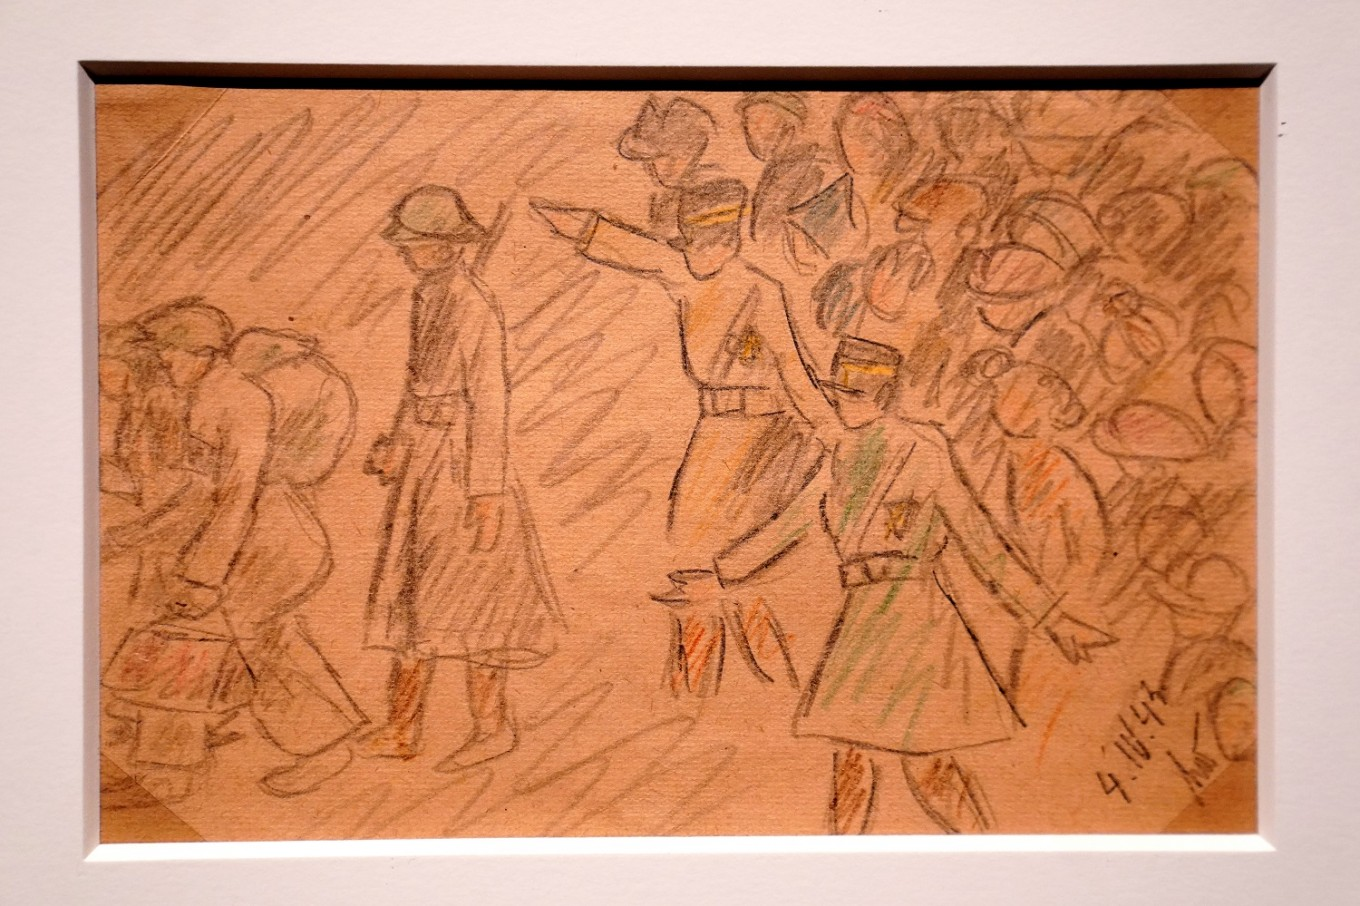 Eyewitness to horror: New York museum opens exhibit of art by Holocaust victims